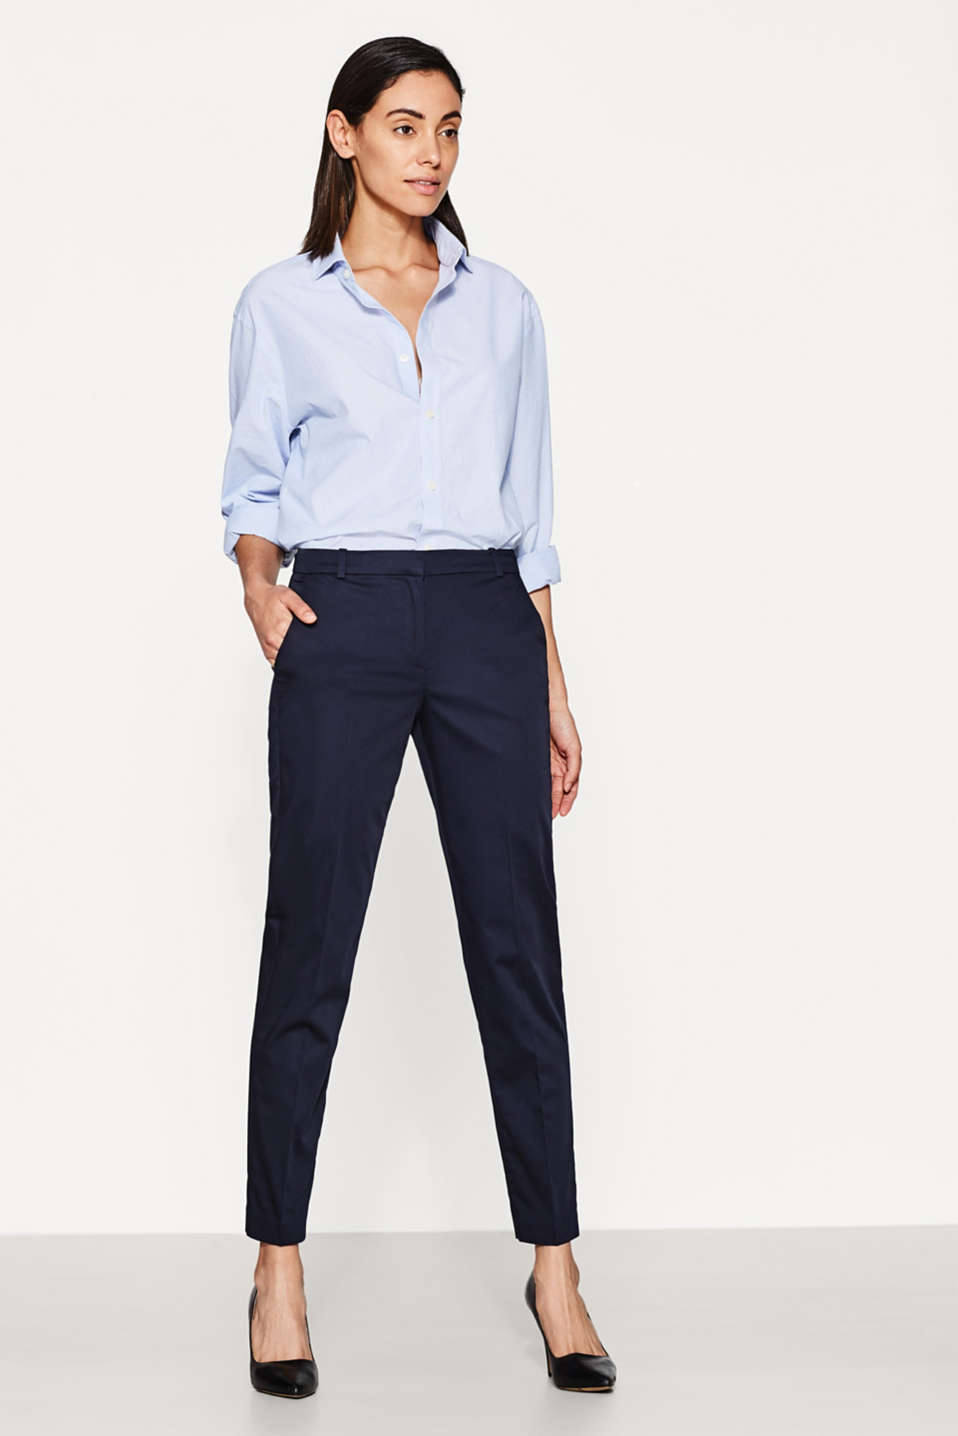 SOFT SATIN Mix + match trousers, NAVY, detail image number 5